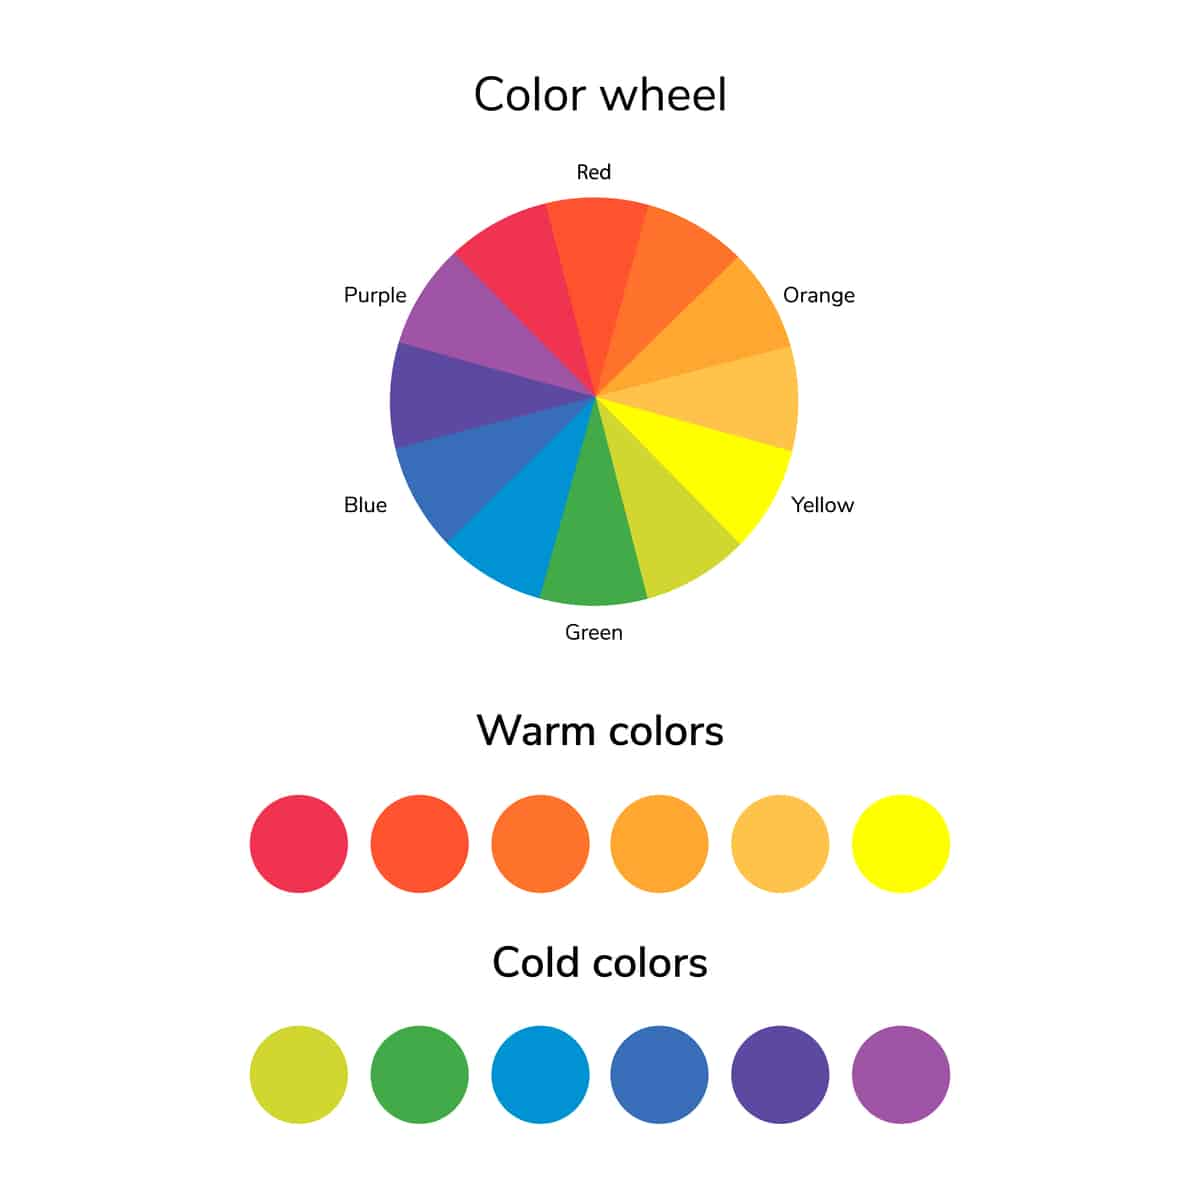 A color wheel with warm and cool colors